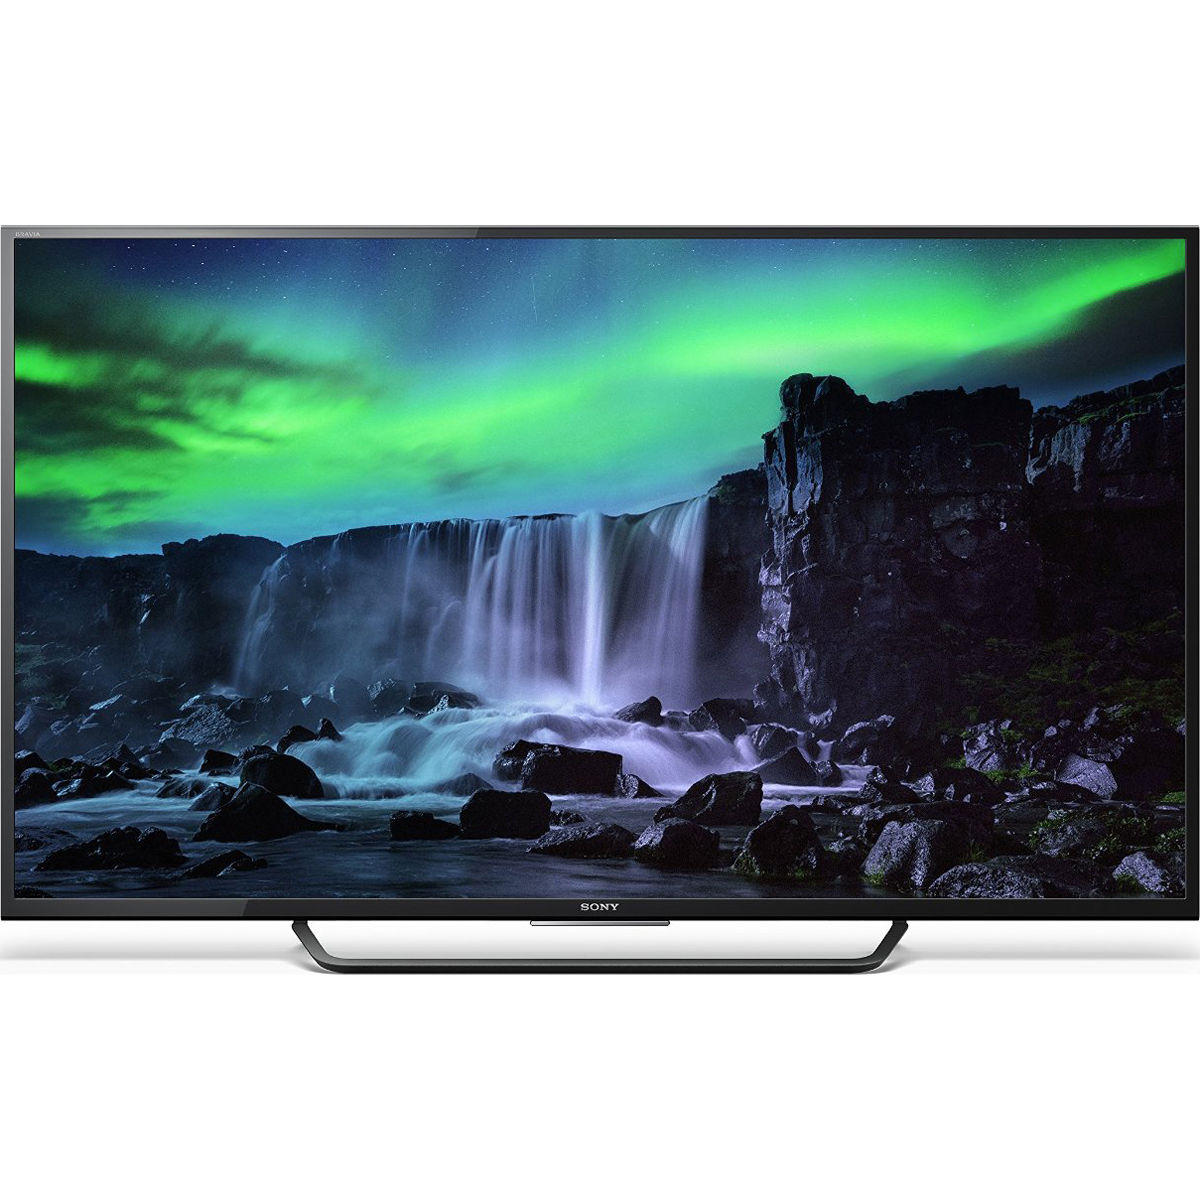 Sony XBR-65X810C - 65-Inch 4K Ultra HD 120Hz Android Smart LED TV